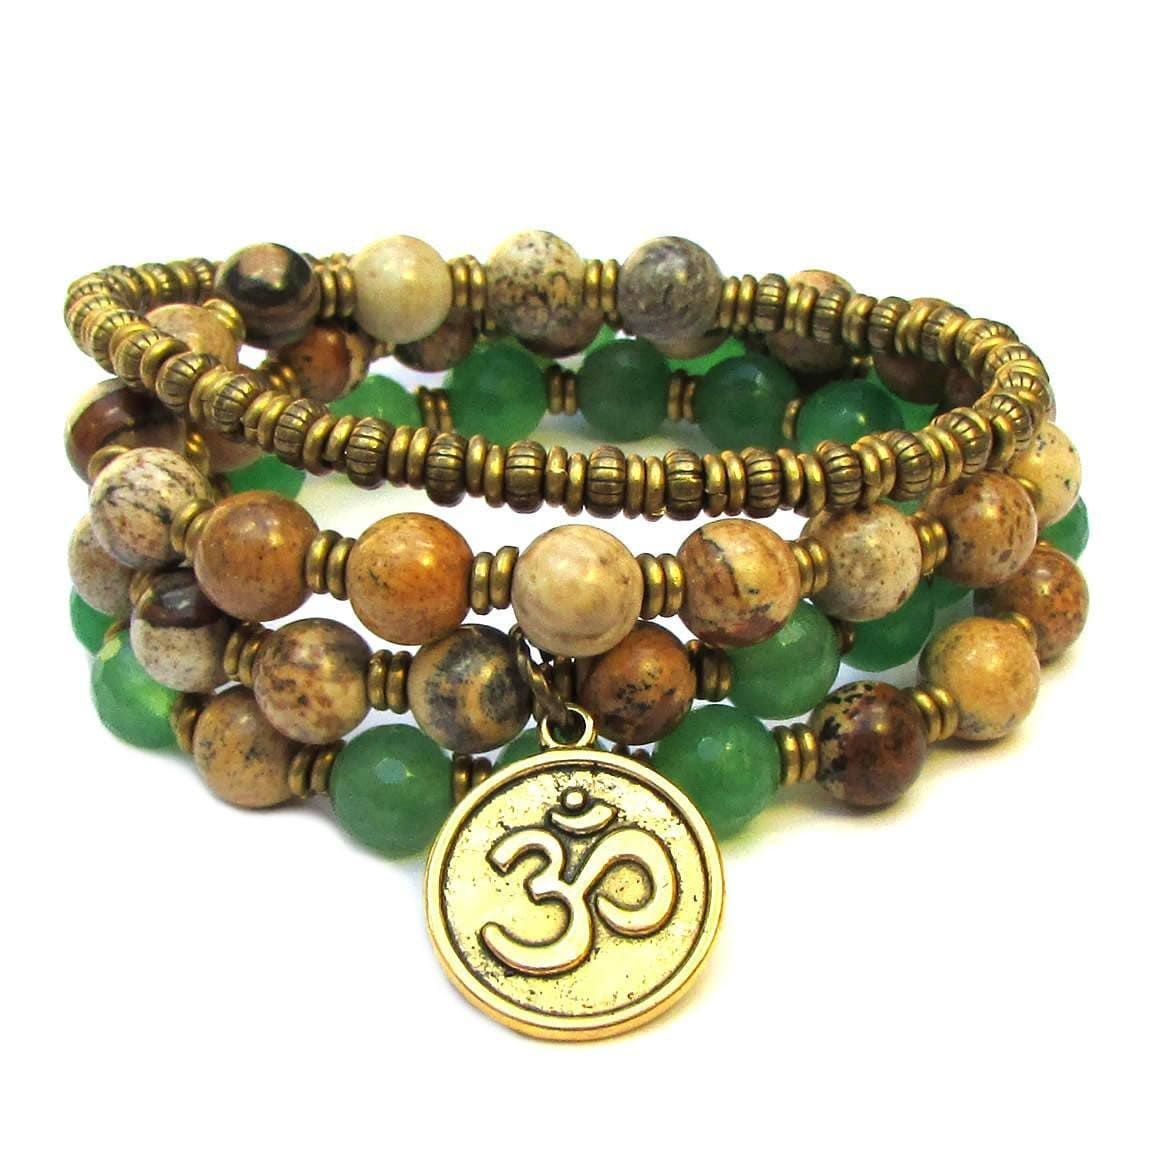 Bracelets - Balance And Protection, Aventurine And Jasper 54 Bead Convertible Wrap Mala Bracelet Or Necklace